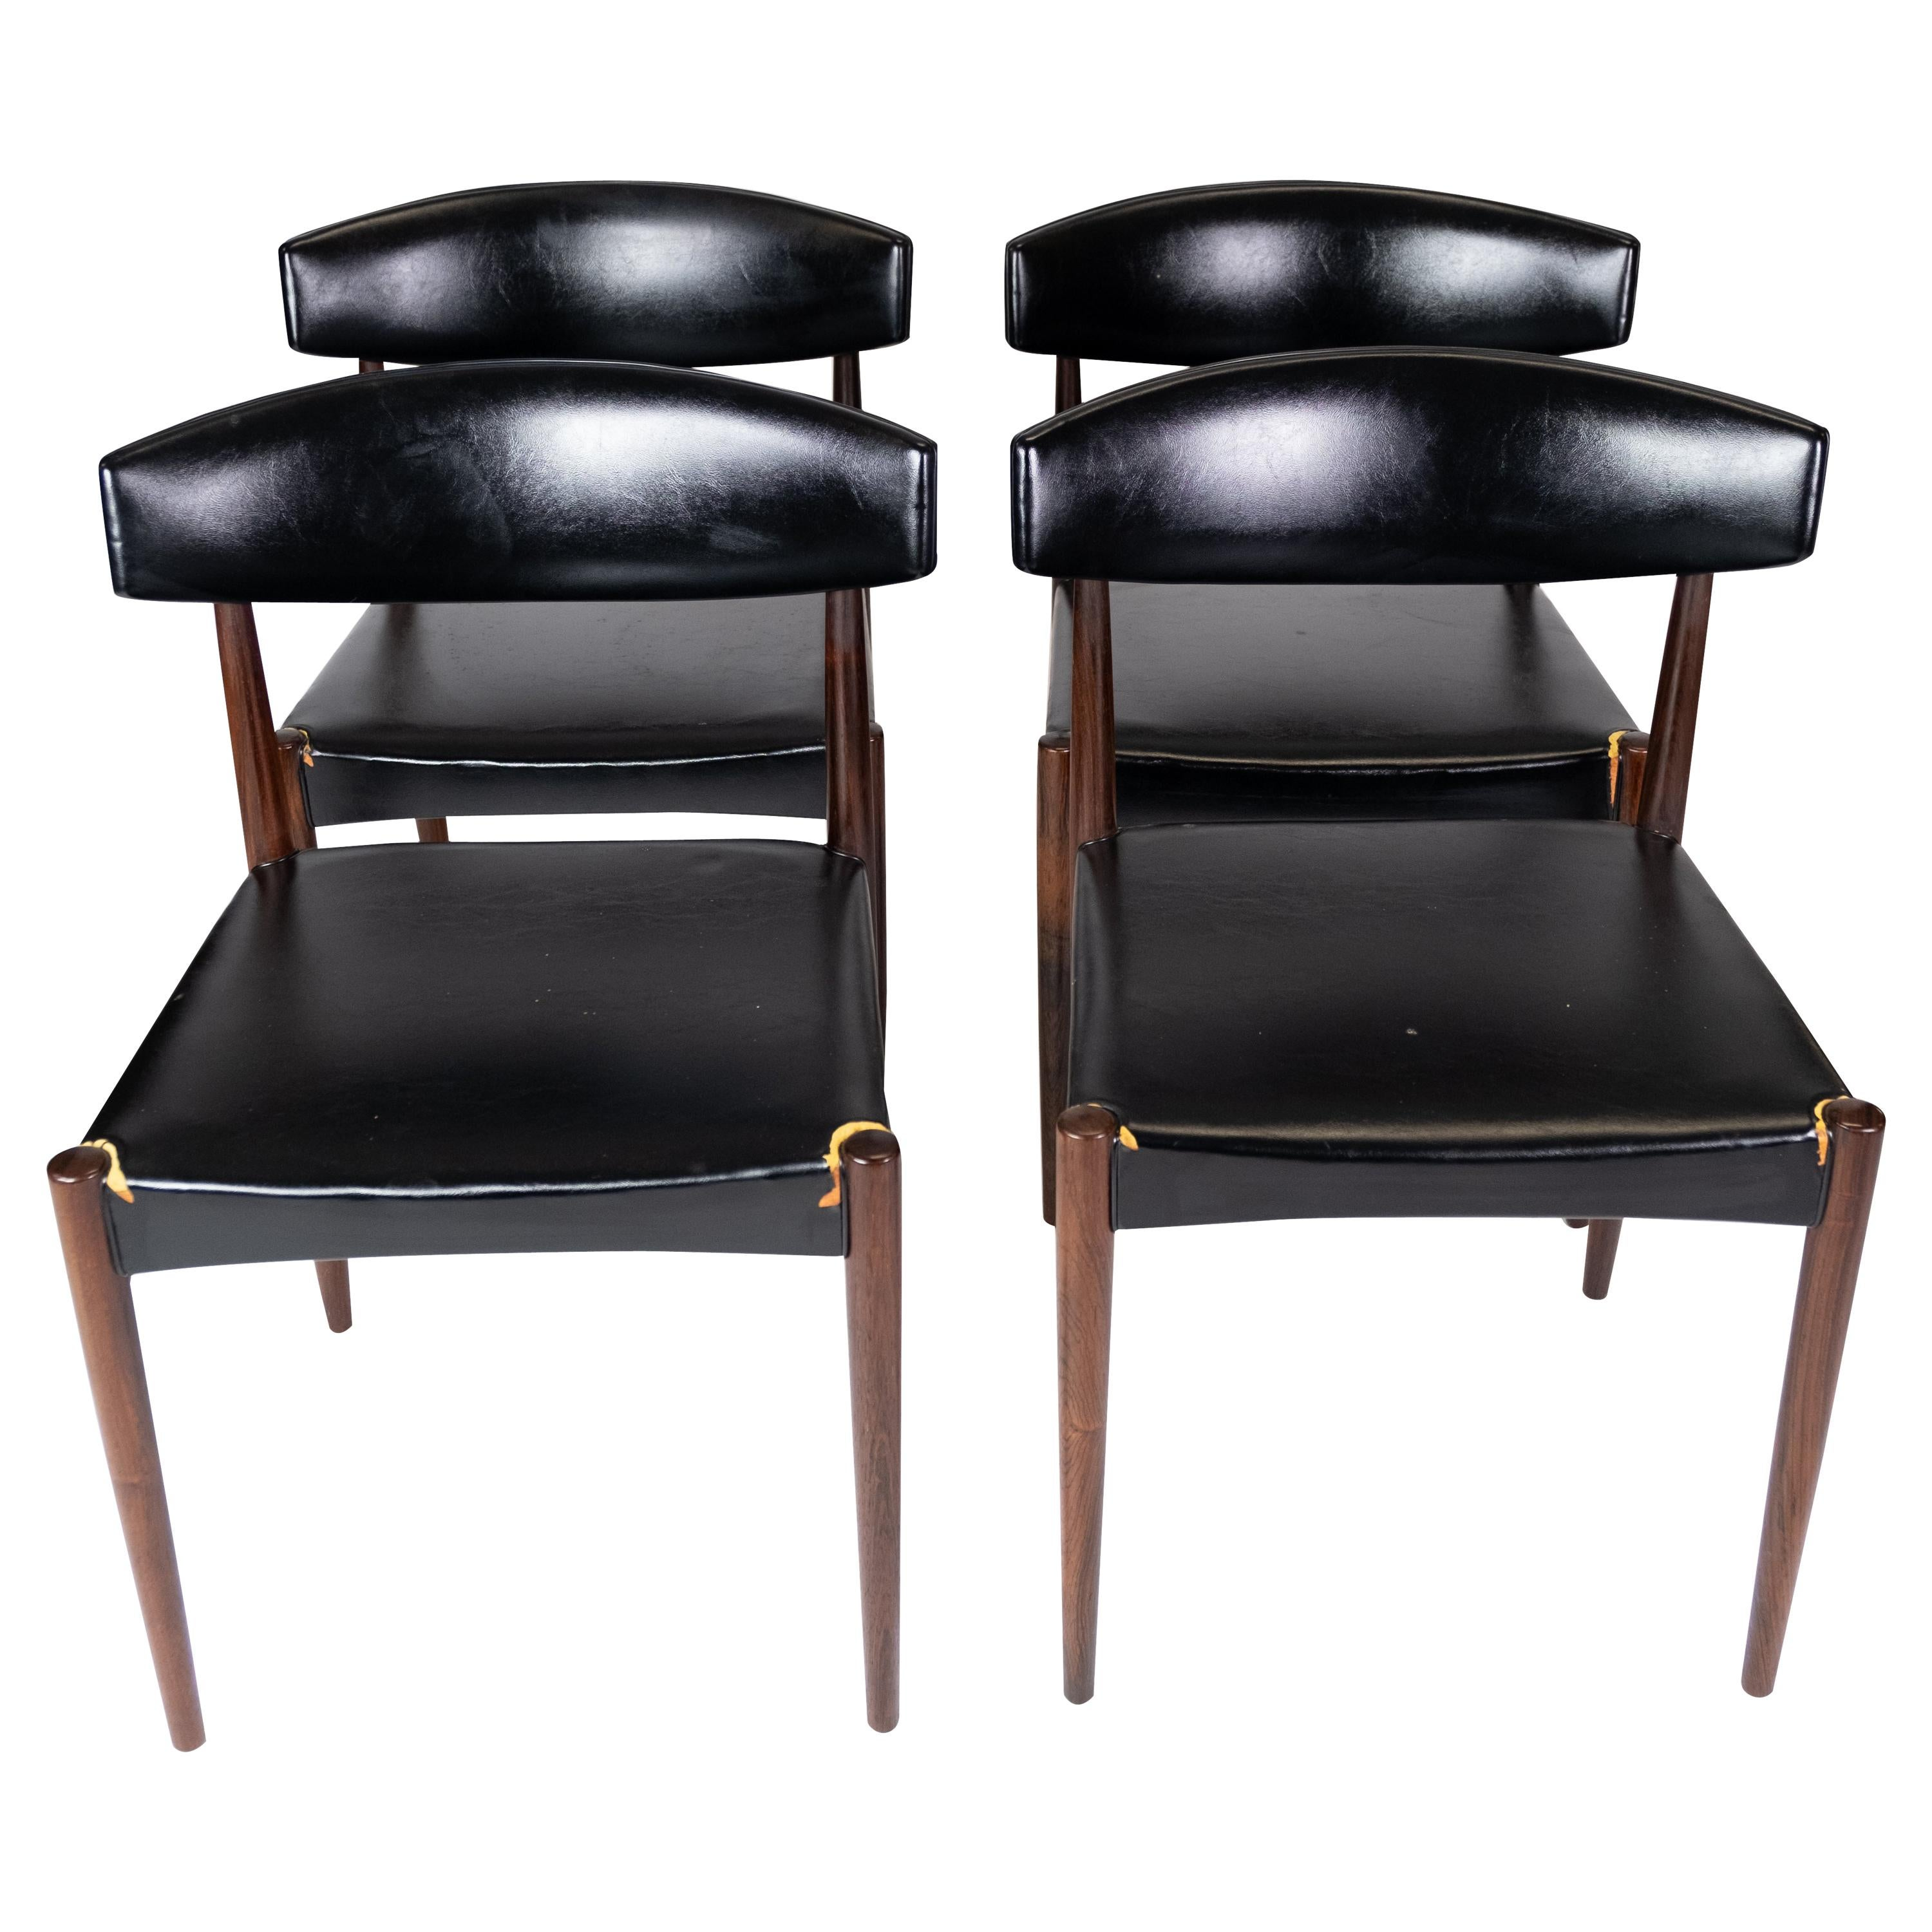 Set of Four Dining Room Chairs in Rosewood of Danish Design, 1965